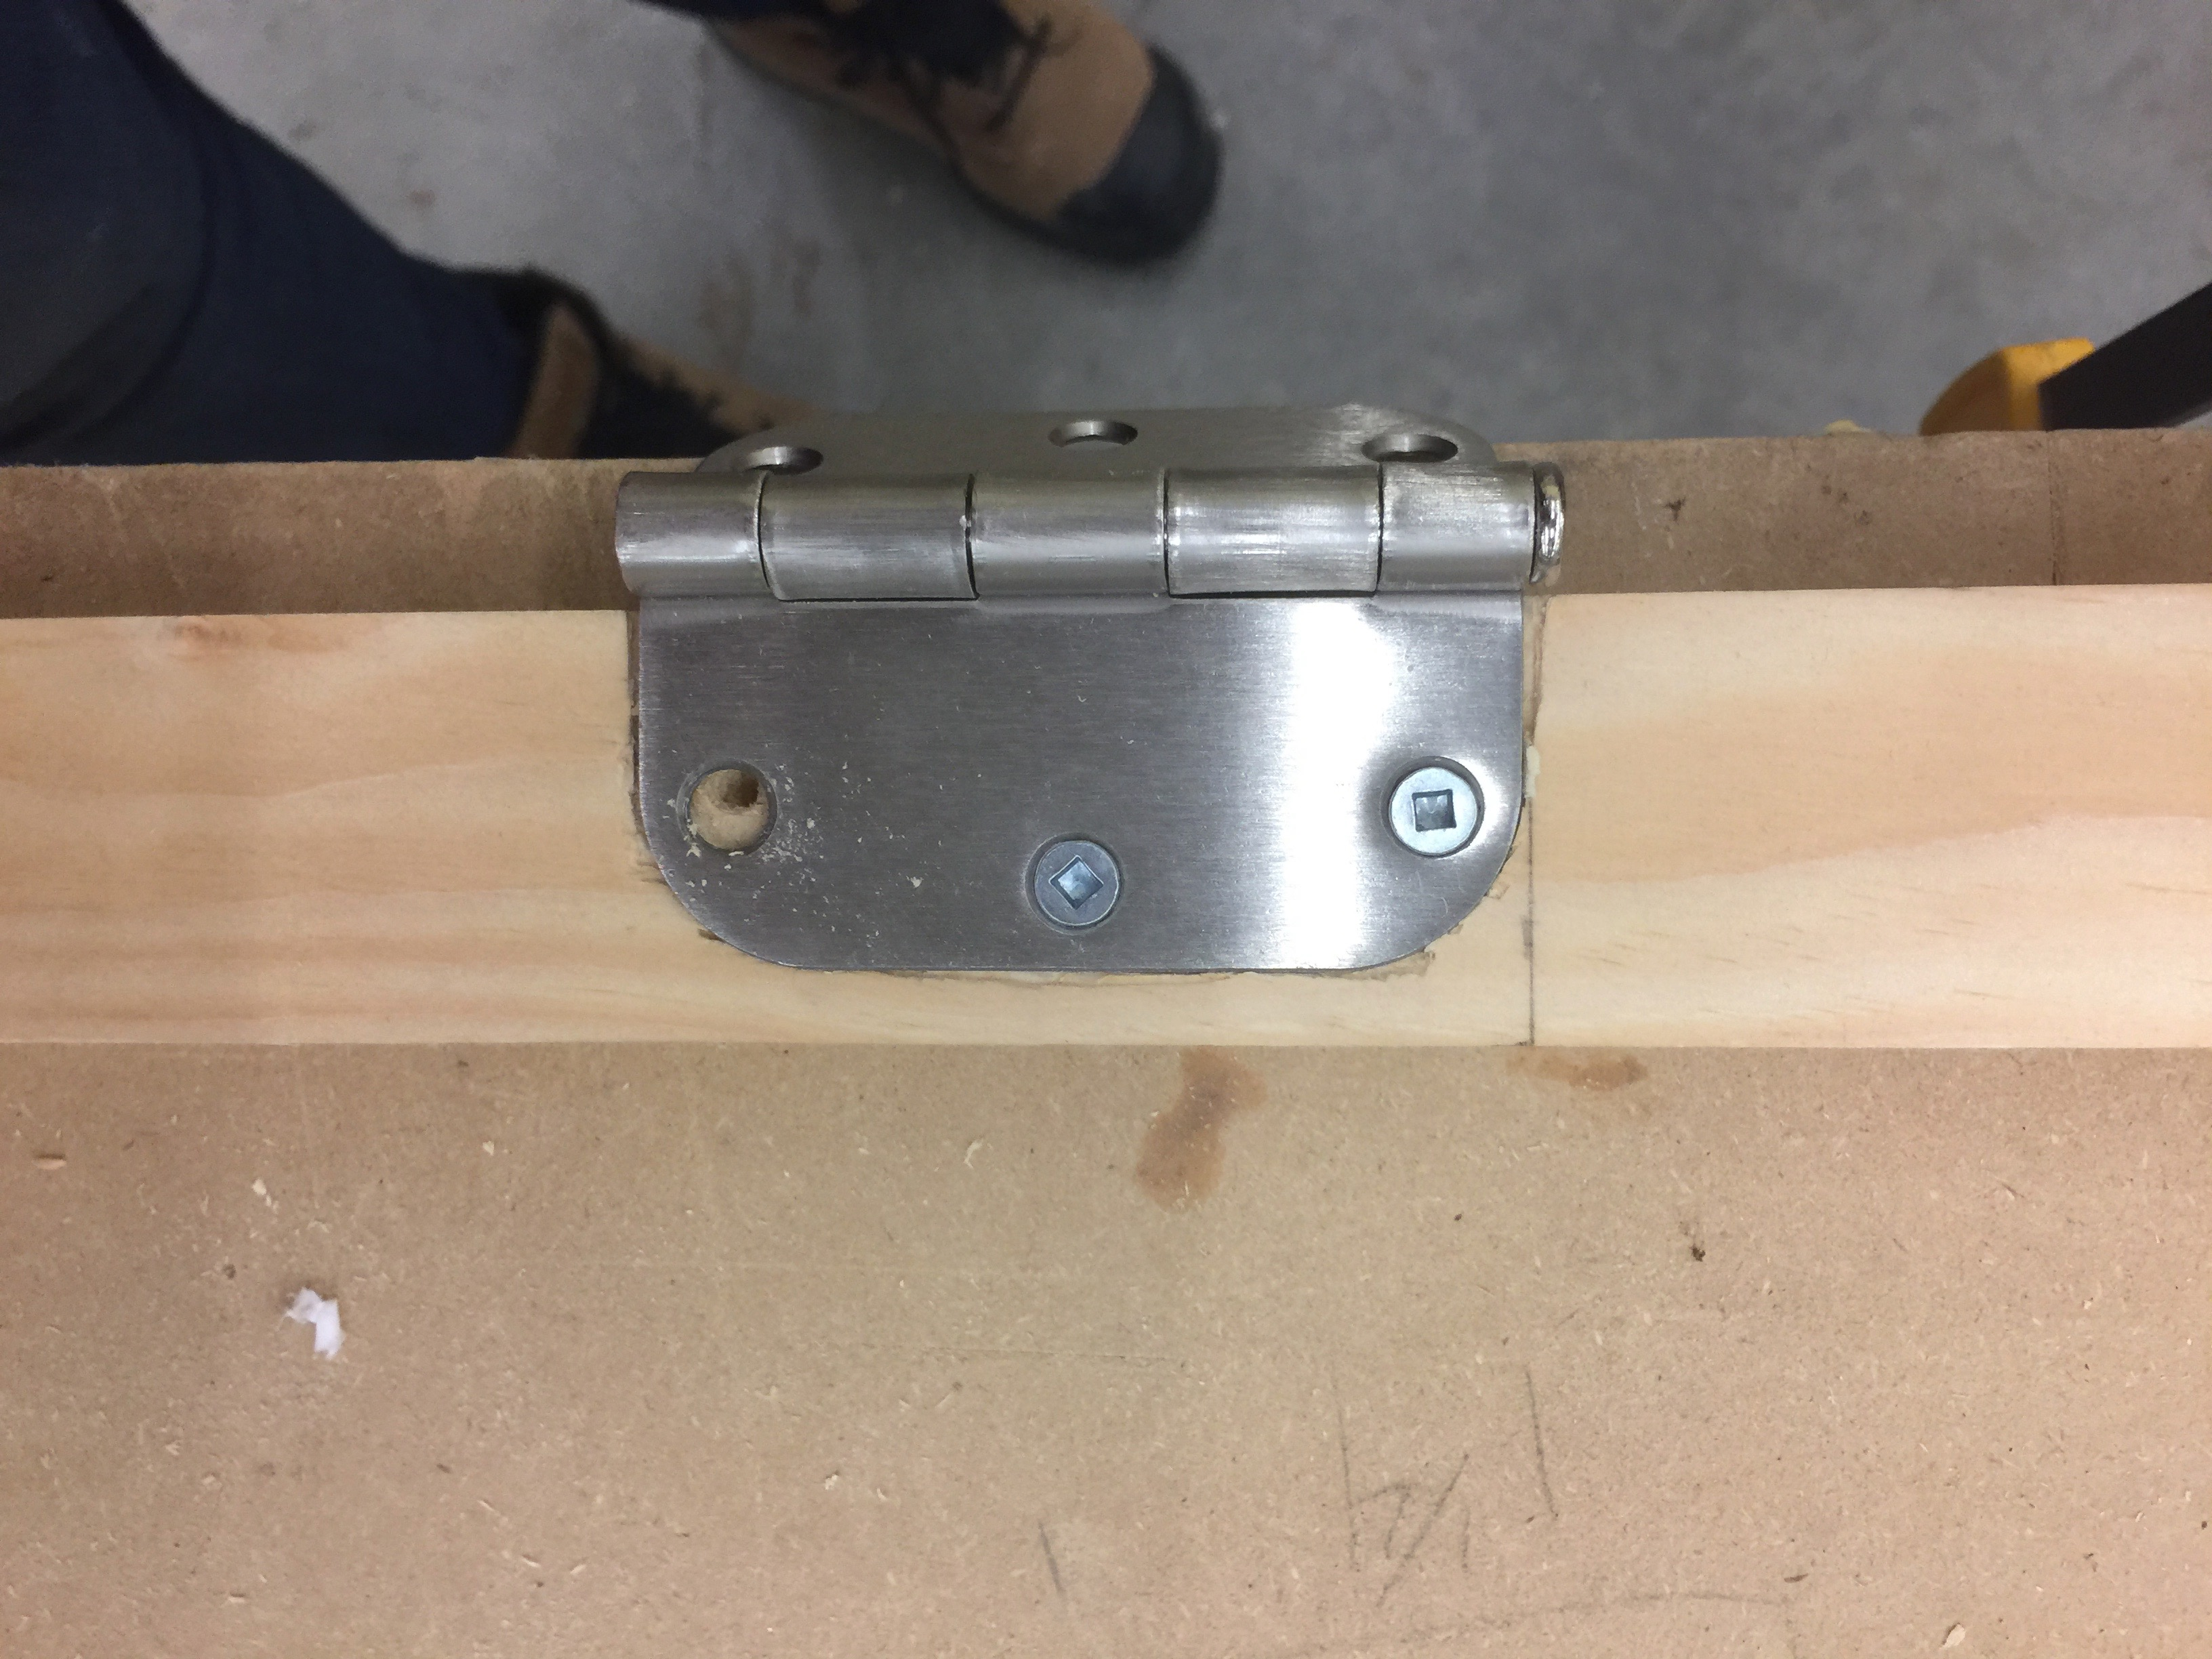 Attaching hinges to a piece of wood